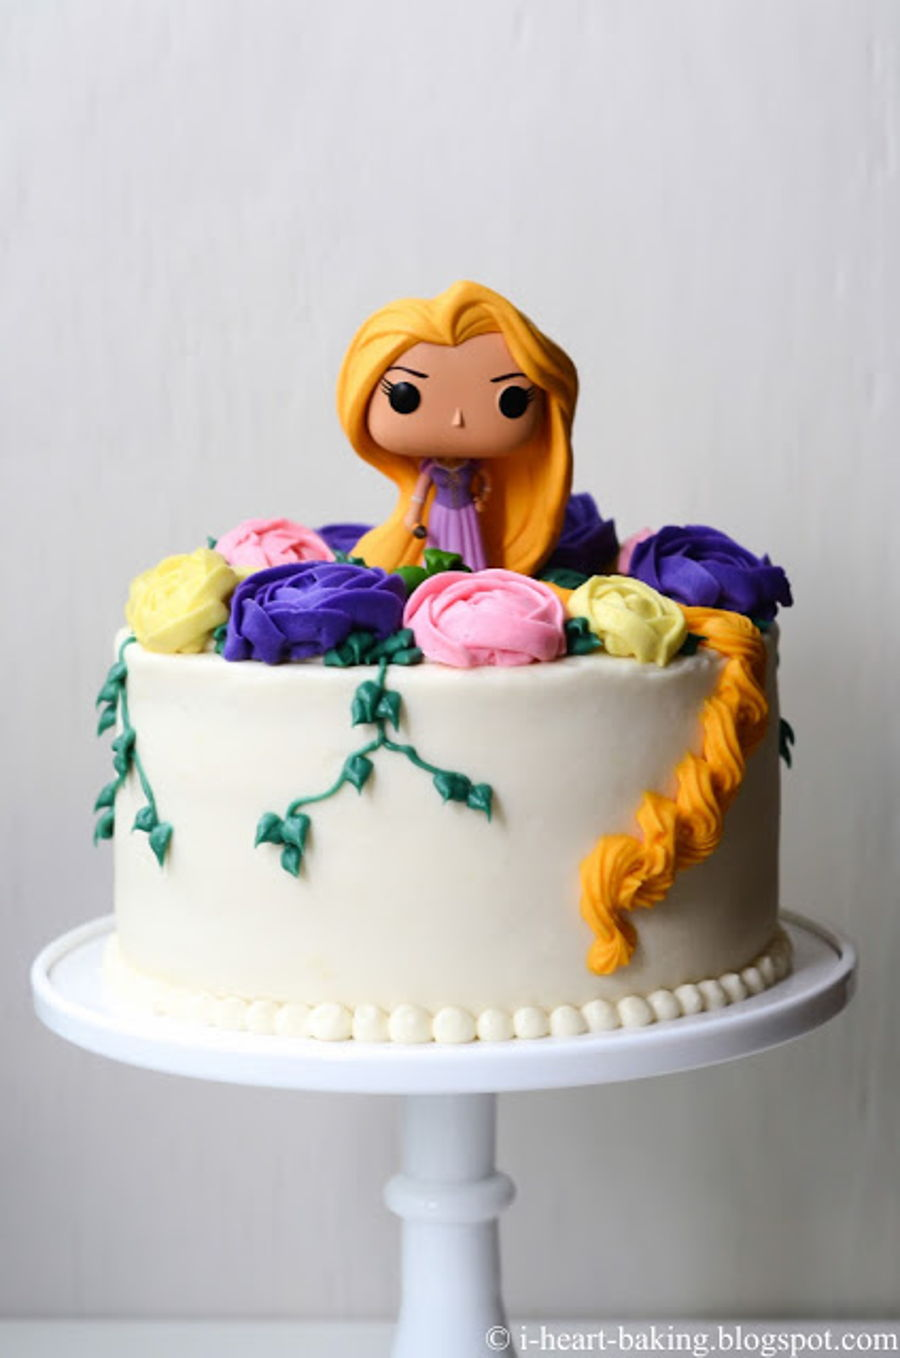 Tremendous Tangled Rapunzel Birthday Cake With Buttercream Flowers Birthday Cards Printable Inklcafe Filternl